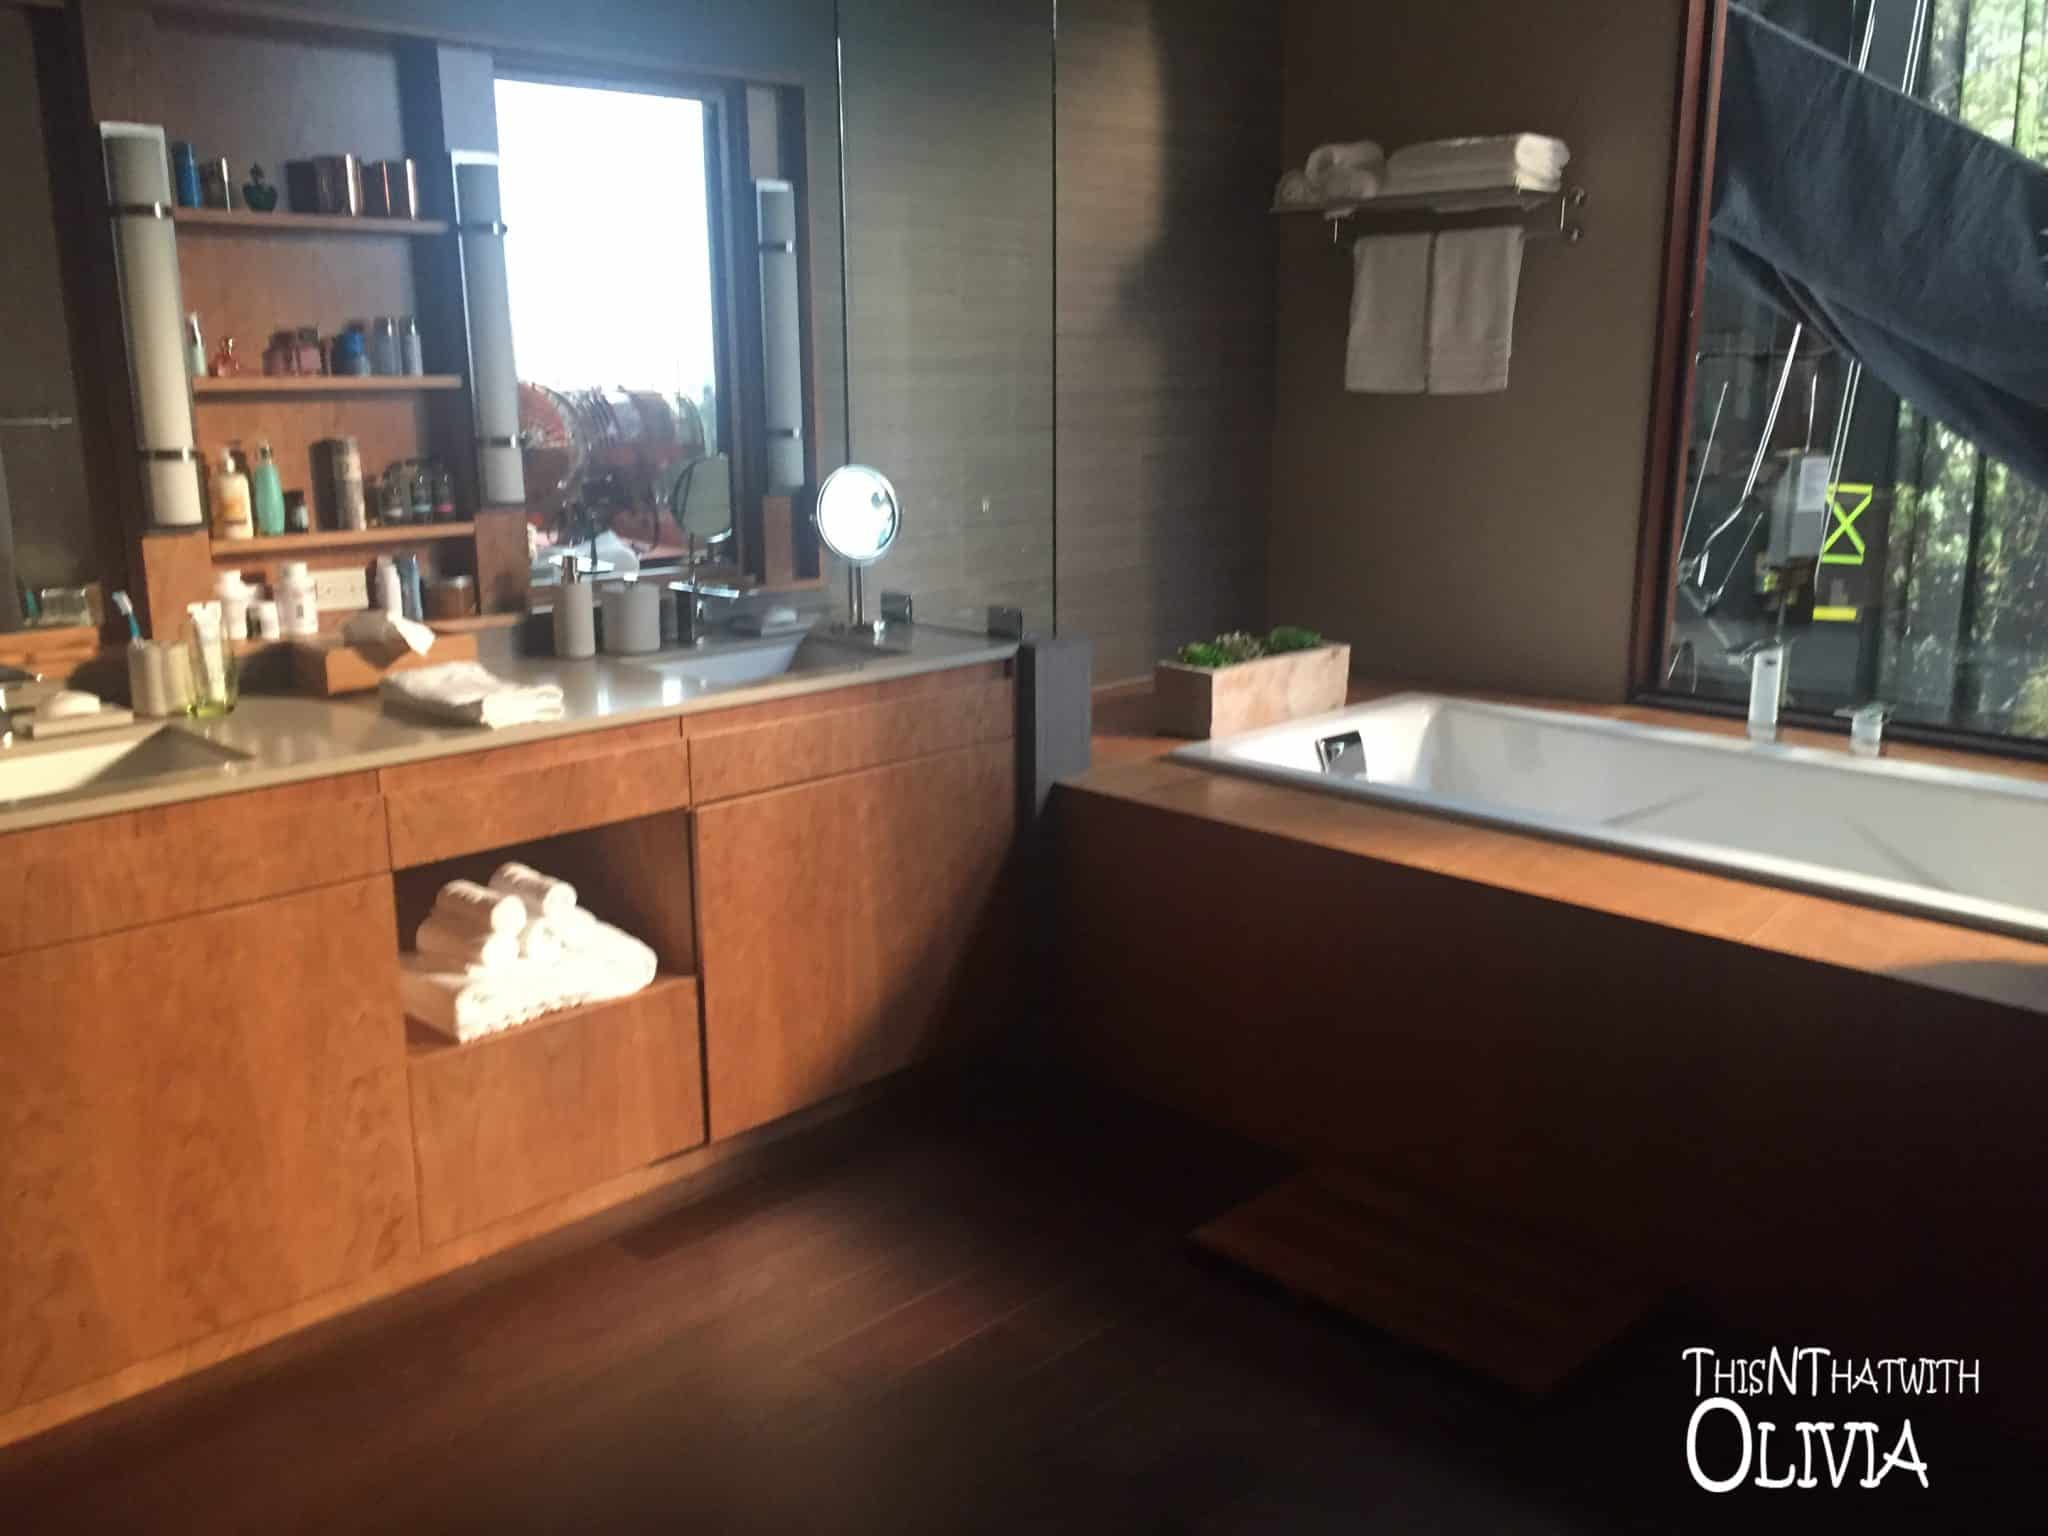 Bathroom on the set of The Catch